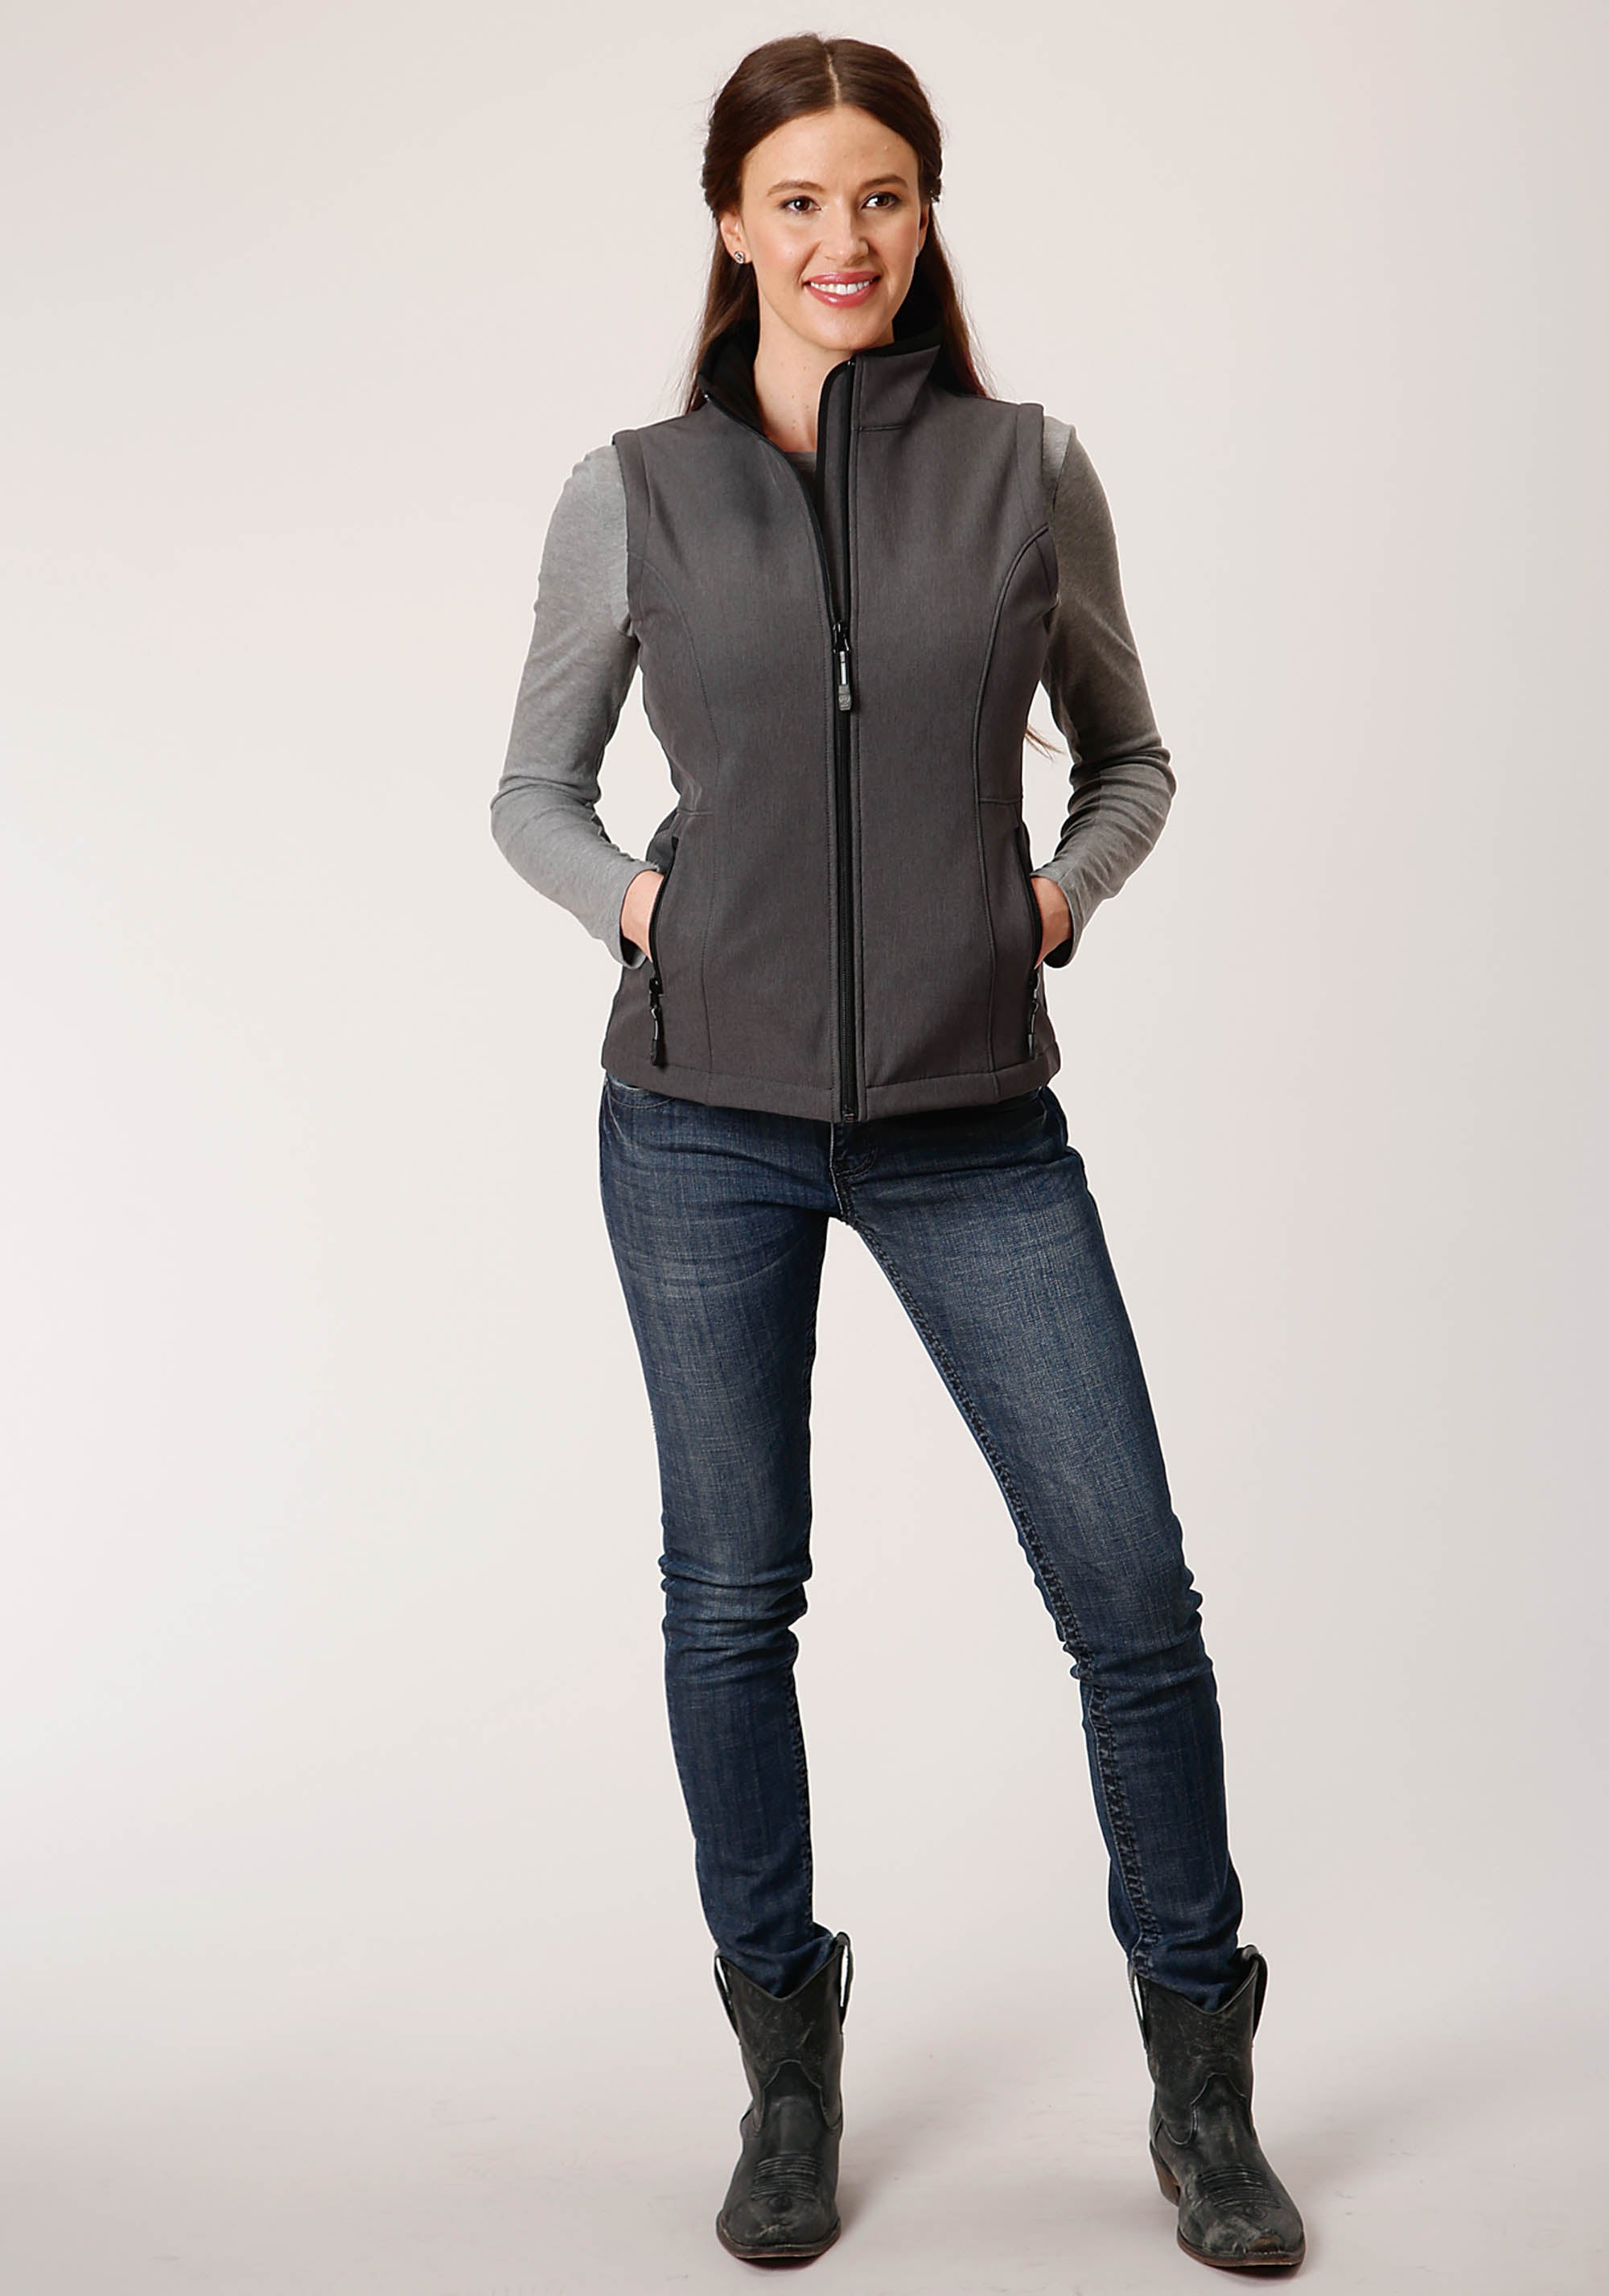 OUTERWEAR WOMENS GREY 00428 HEATHERED GY SOFTSHELL VEST TECH GROUP